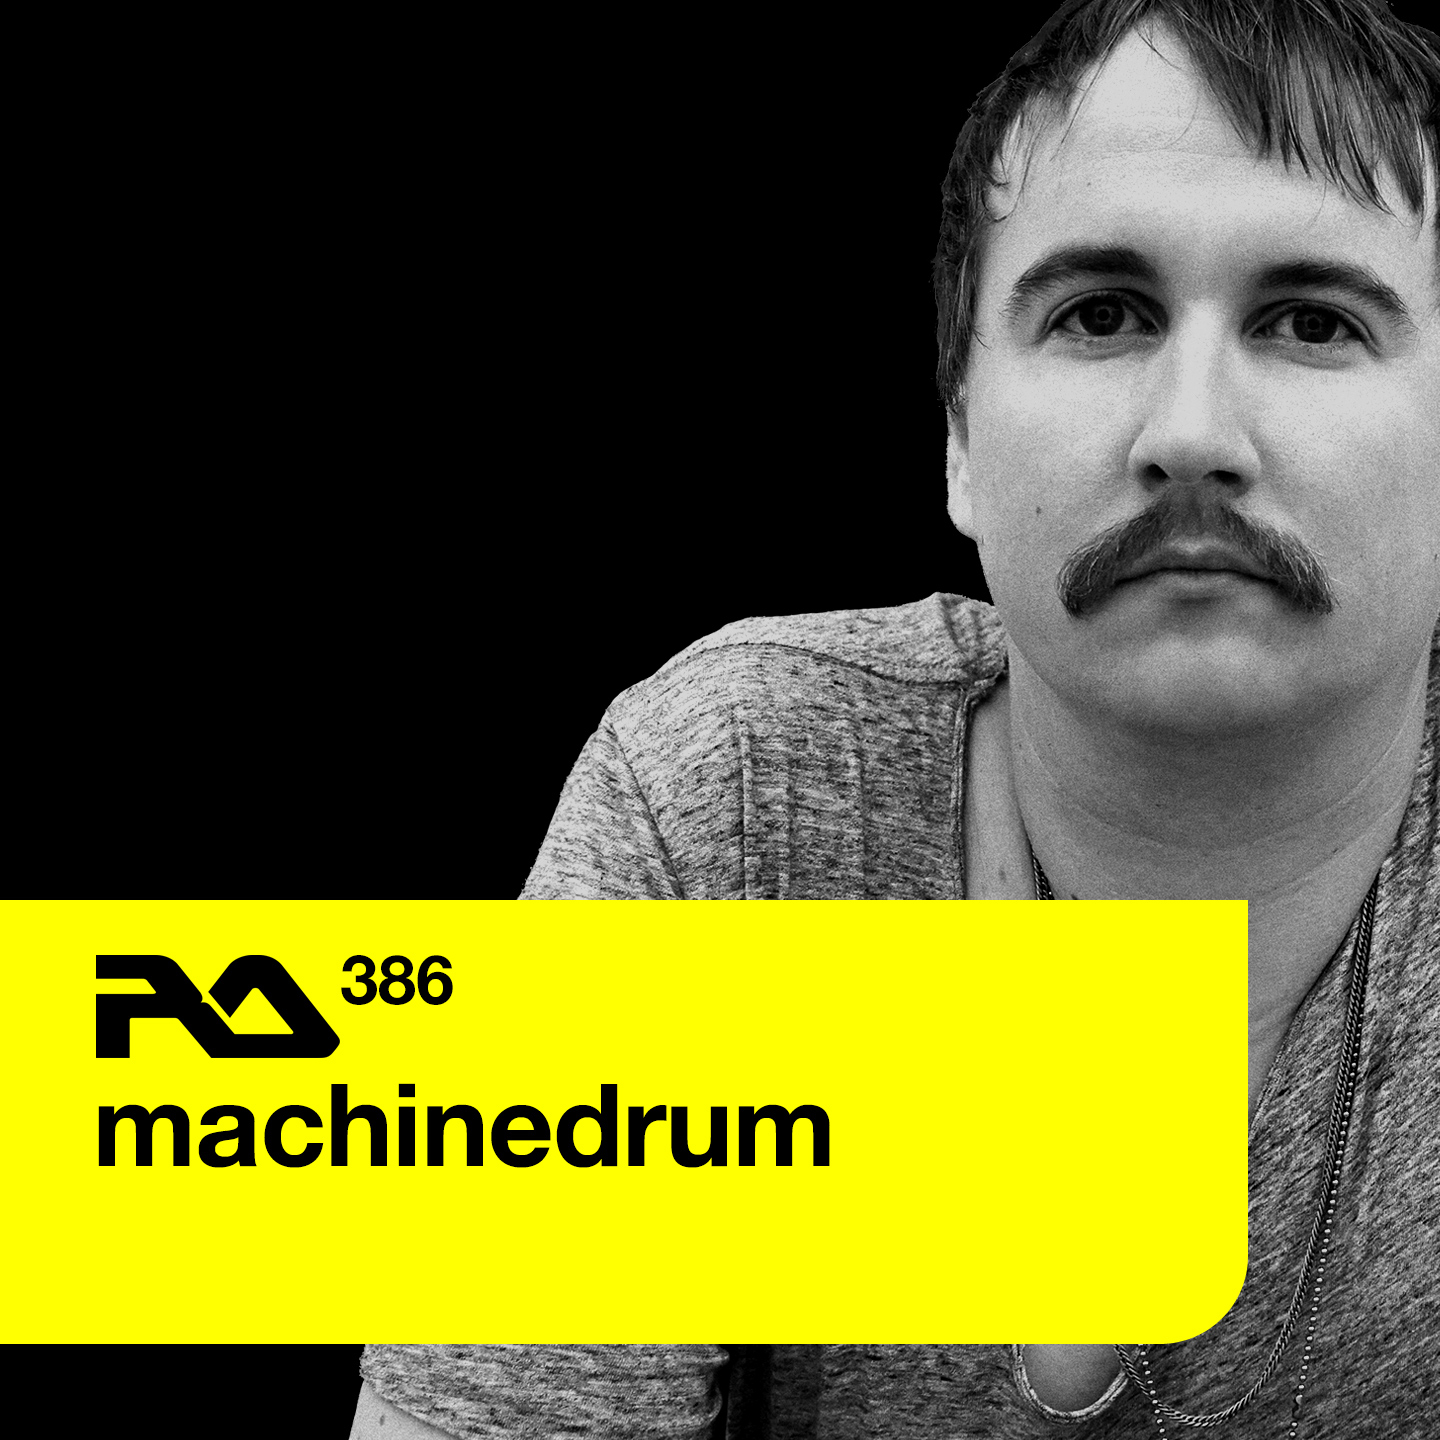 RA.386 Machinedrum